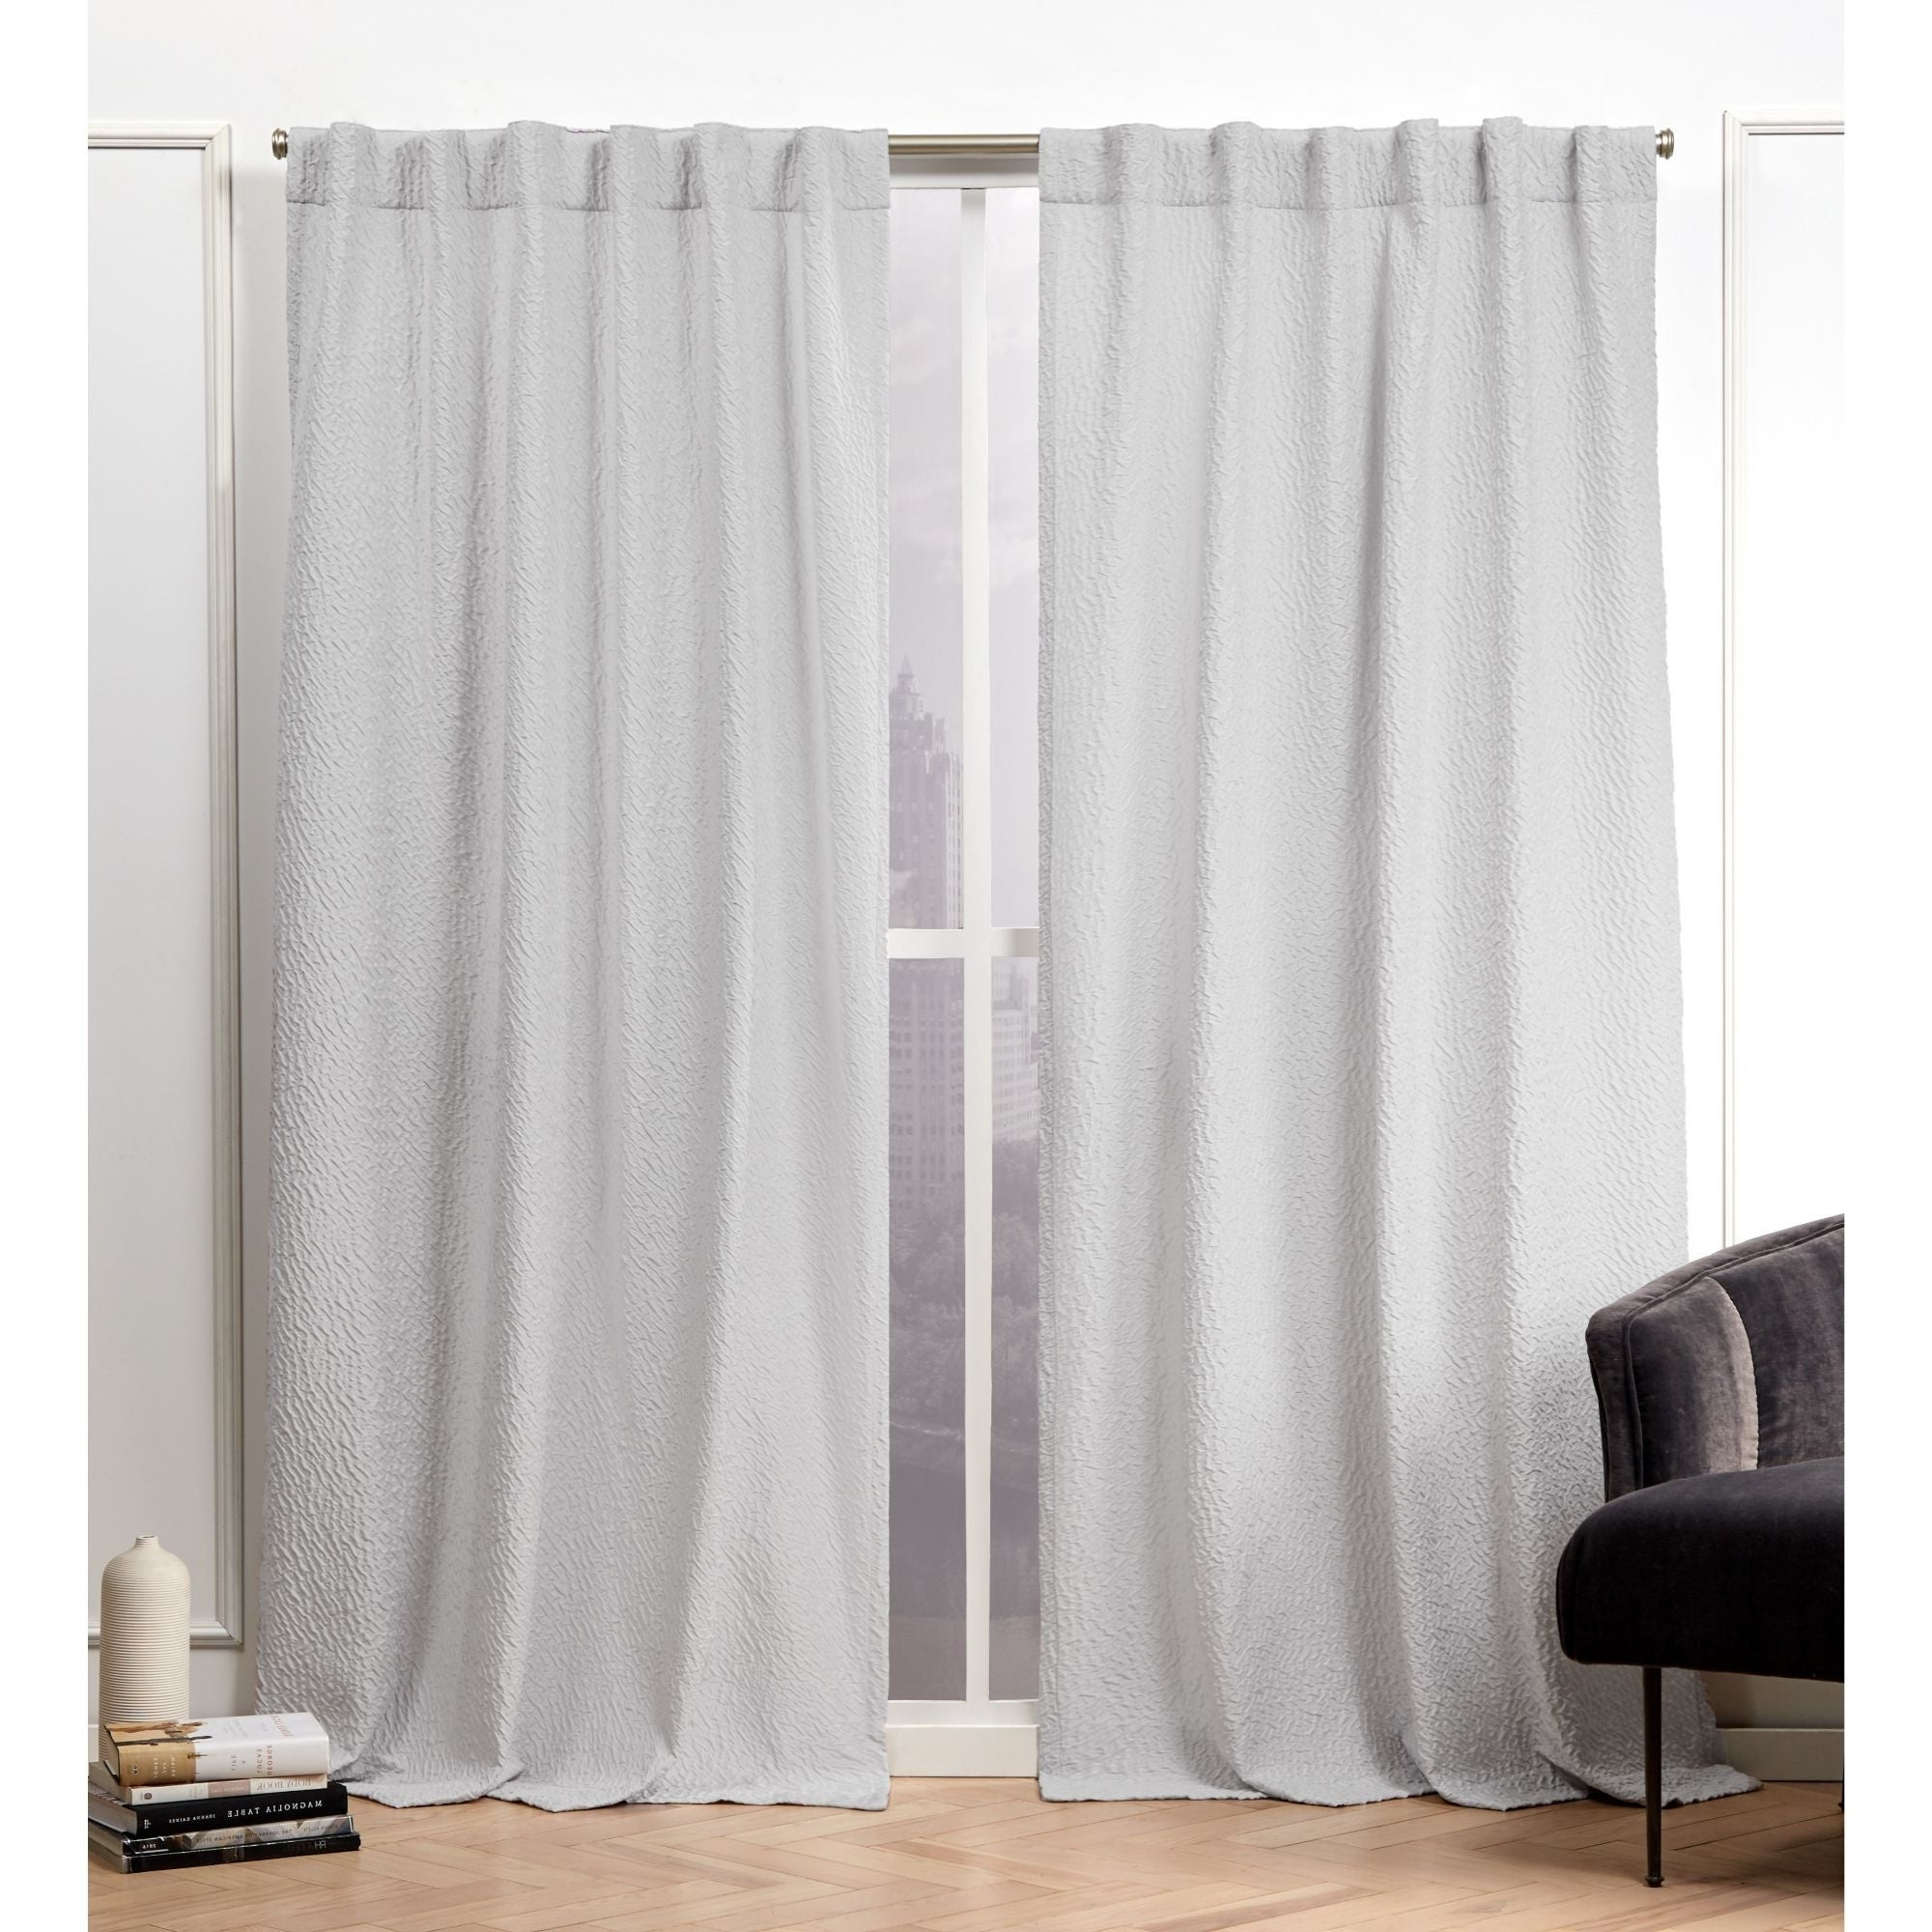 Luxury Collection Cranston Sheer Curtain Panel Pairs With Regard To Recent Nicole Miller Textured Matelassé Hidden Tab Top Sheer Panel Pair (Gallery 5 of 20)